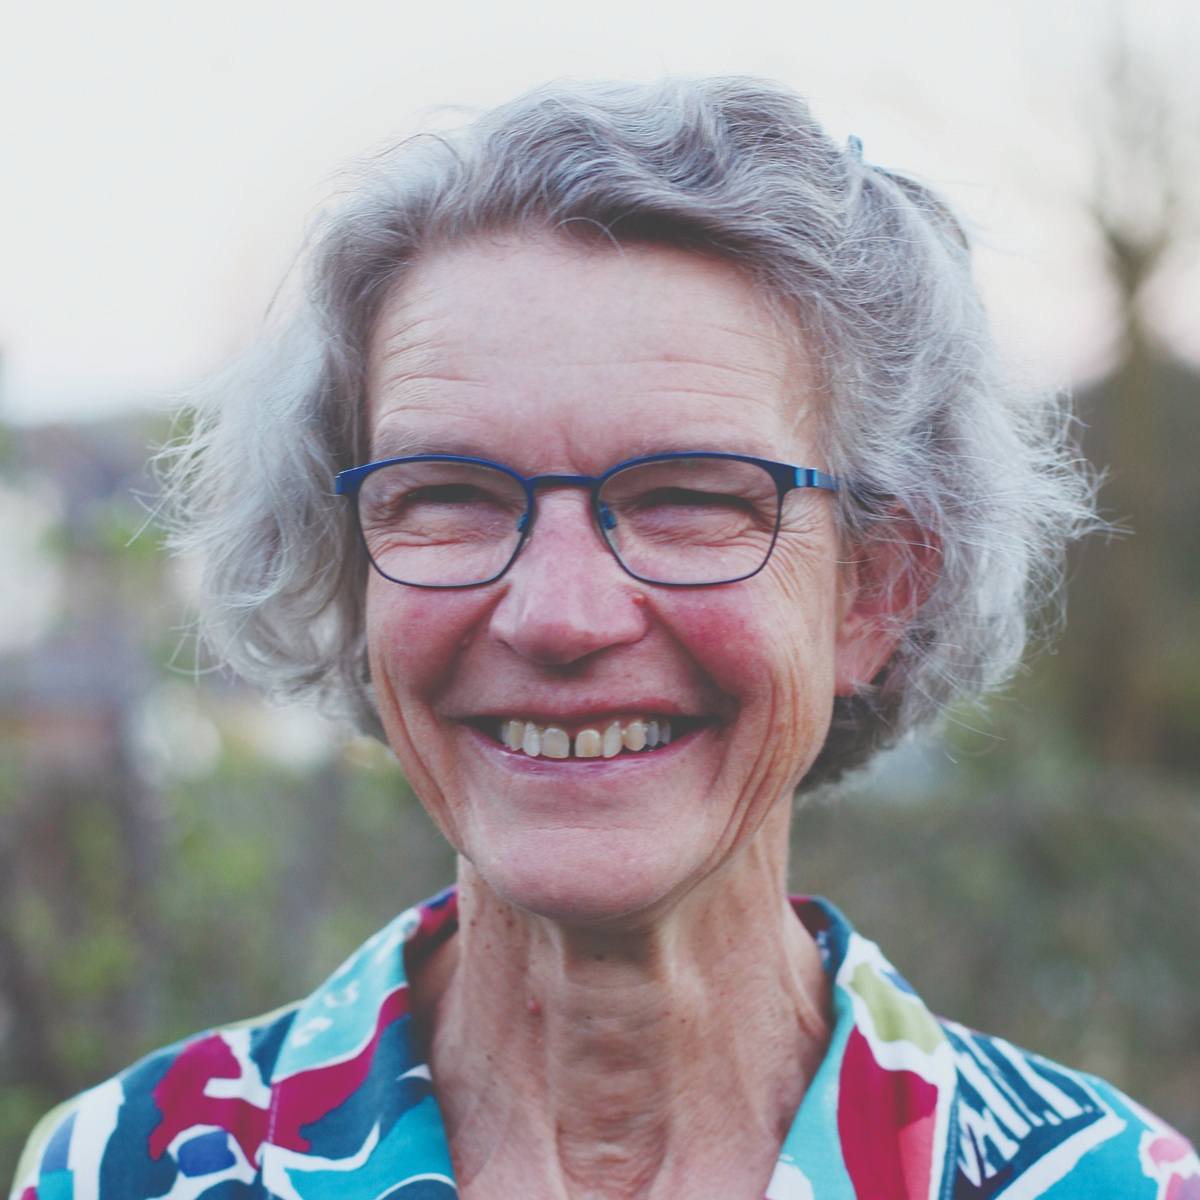 Dr Esther Lüthy - Author, Gynaecologist